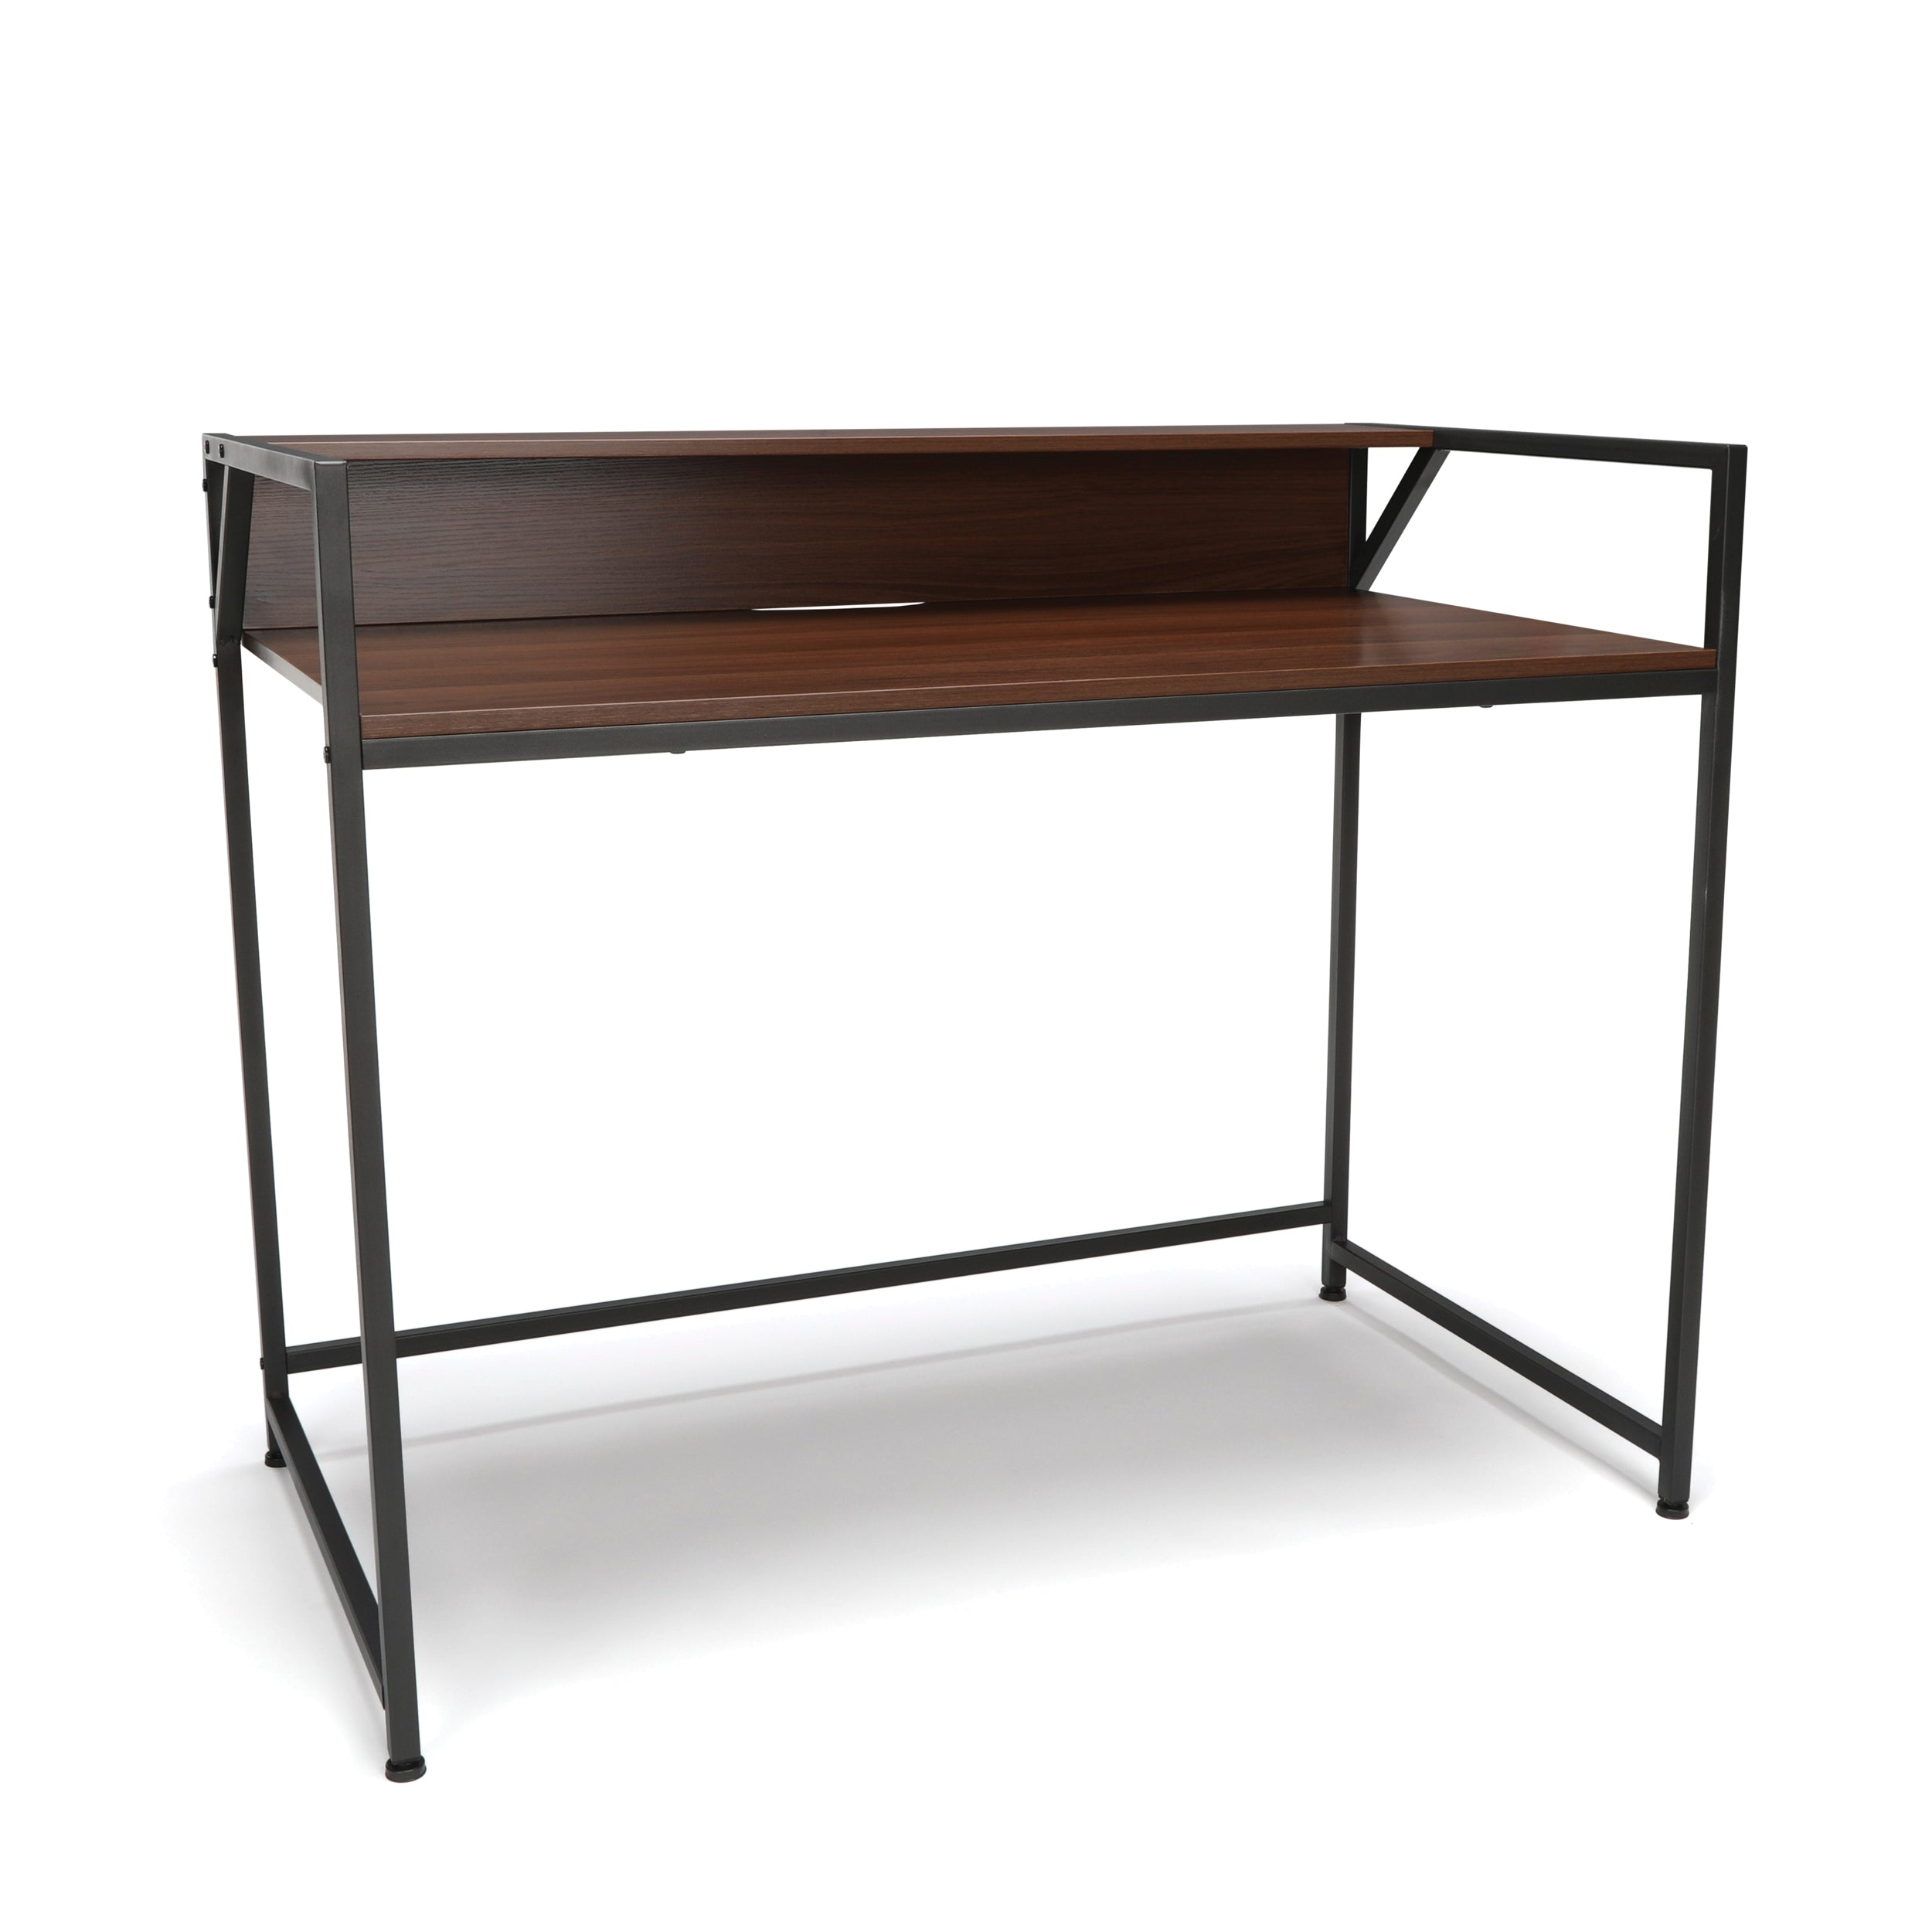 OFM Essentials Collection ESS-1003 Computer Desk with Shelf